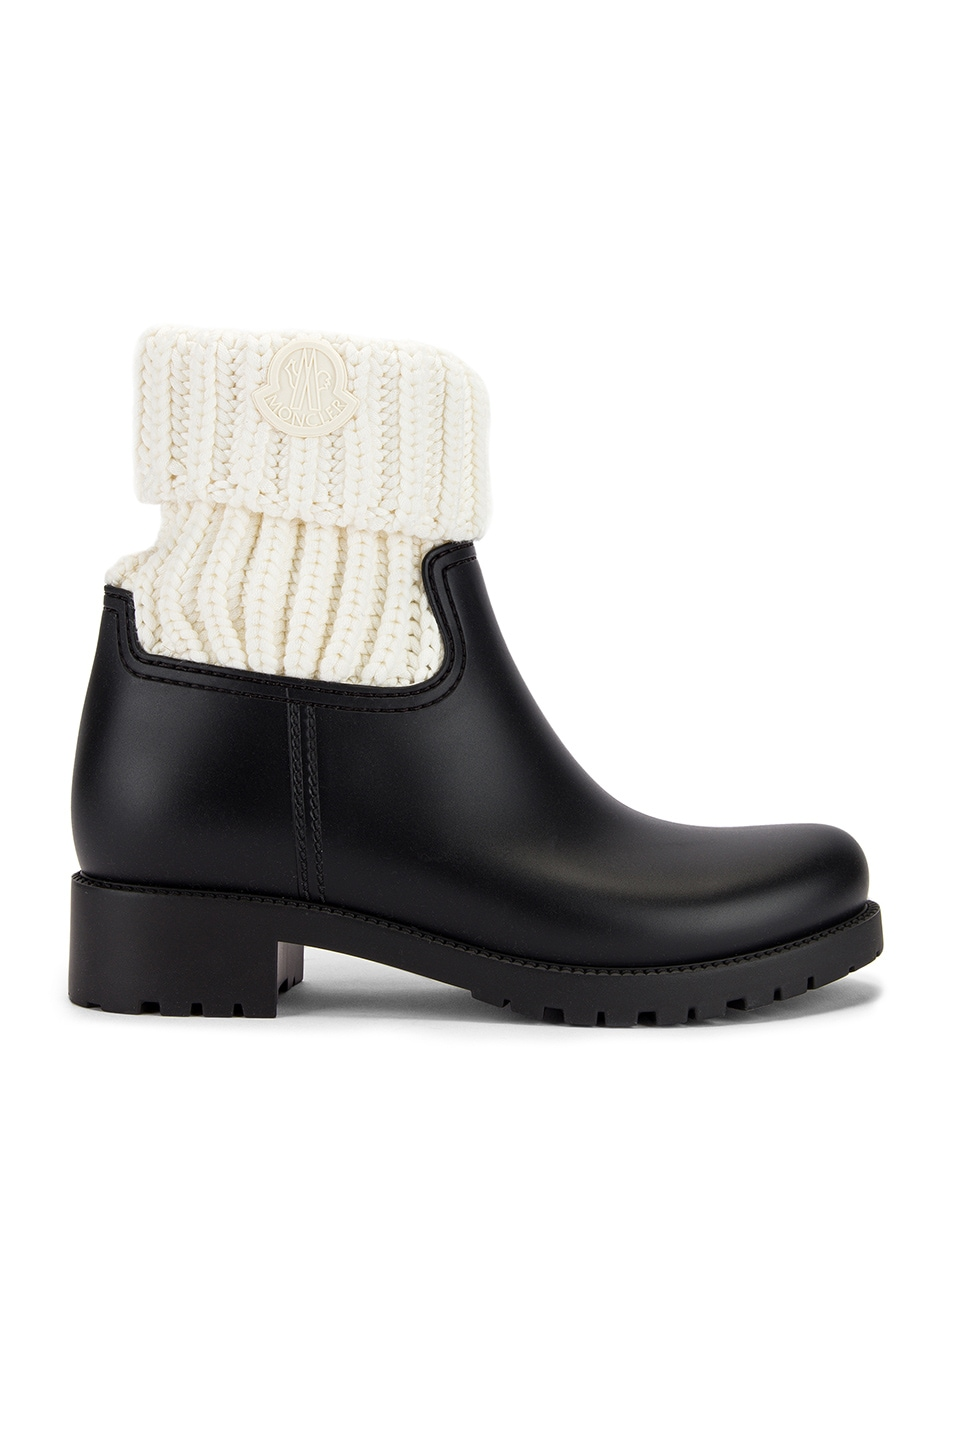 Image 1 of Moncler Ginette Knit Boot in Black & White